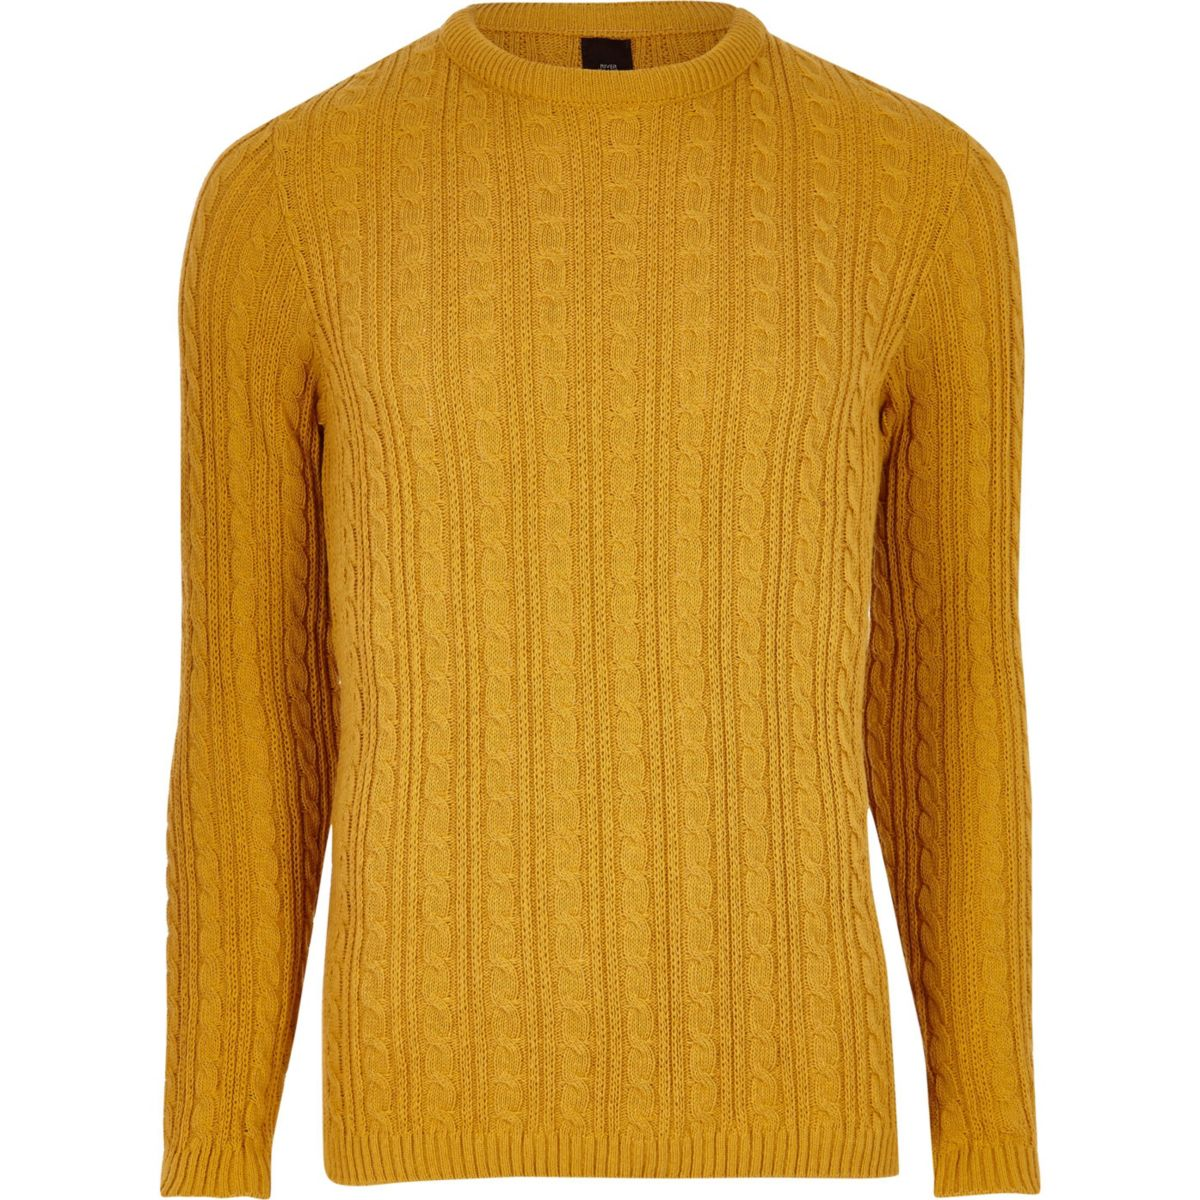 Mustard yellow cable knit muscle fit sweater - Sweaters - Sweaters ...